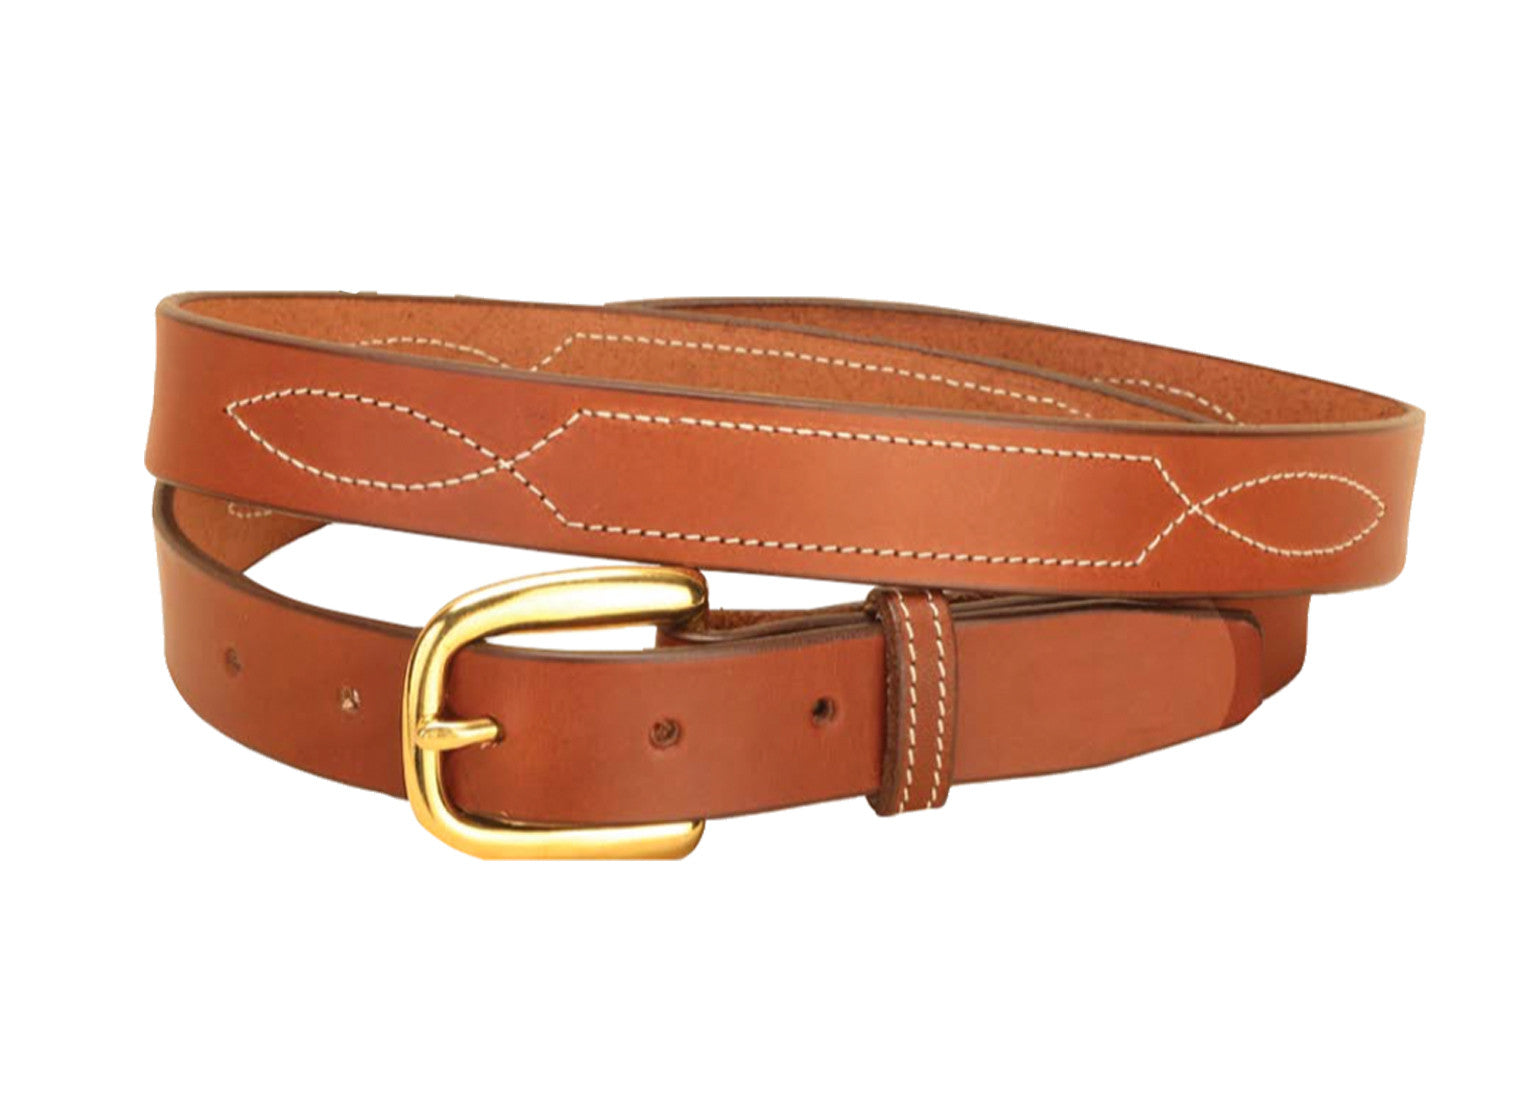 "Tory Leather 1"" Stitched Pattern Leather Belt - North Shore Saddlery"